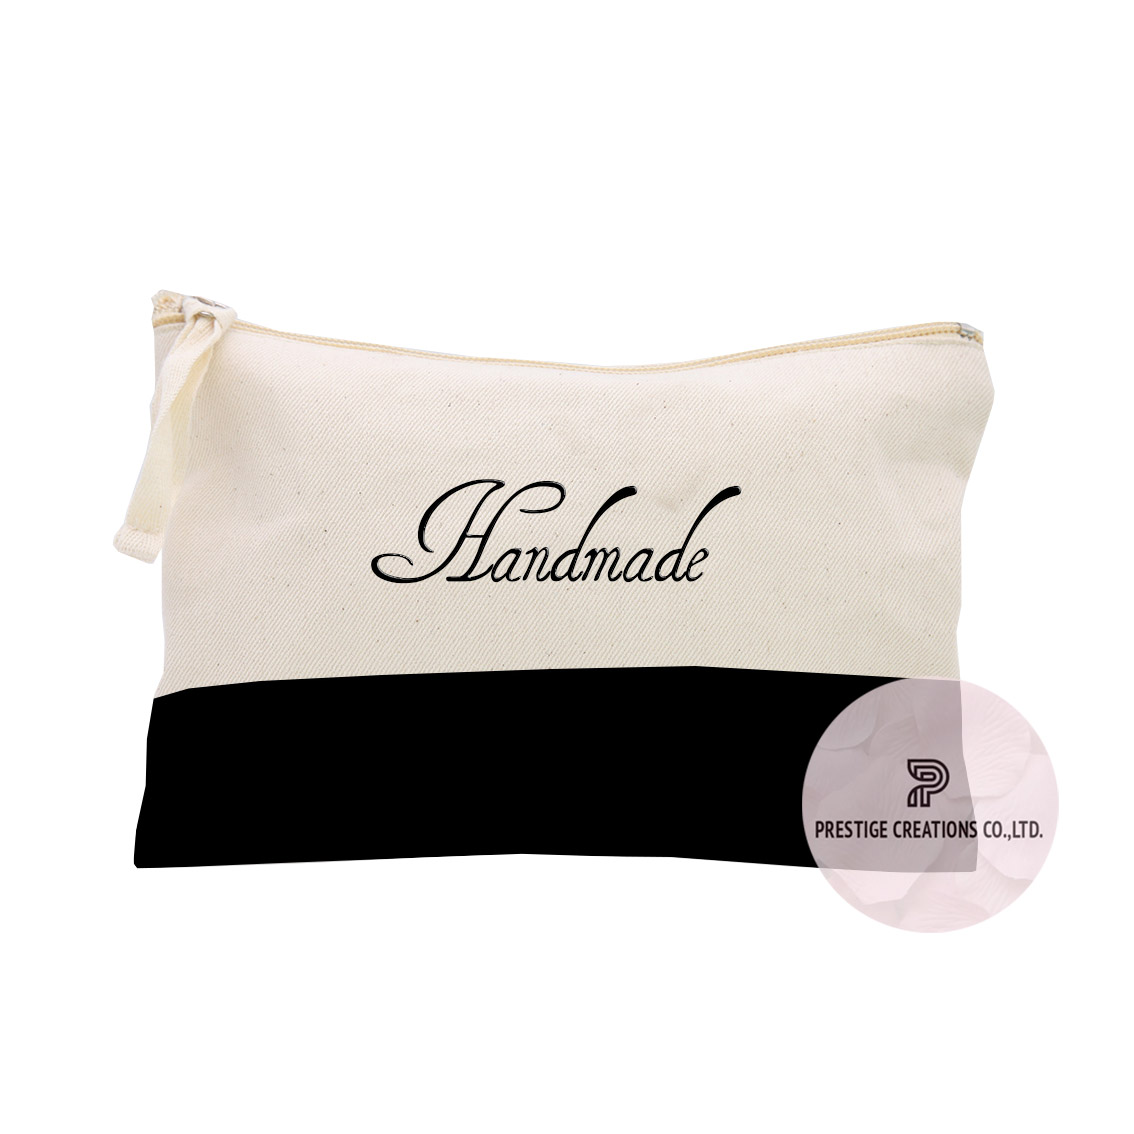 Embroidered Personalized Cotton Cosmetic Bags Amp Cotton Bags Wholesale